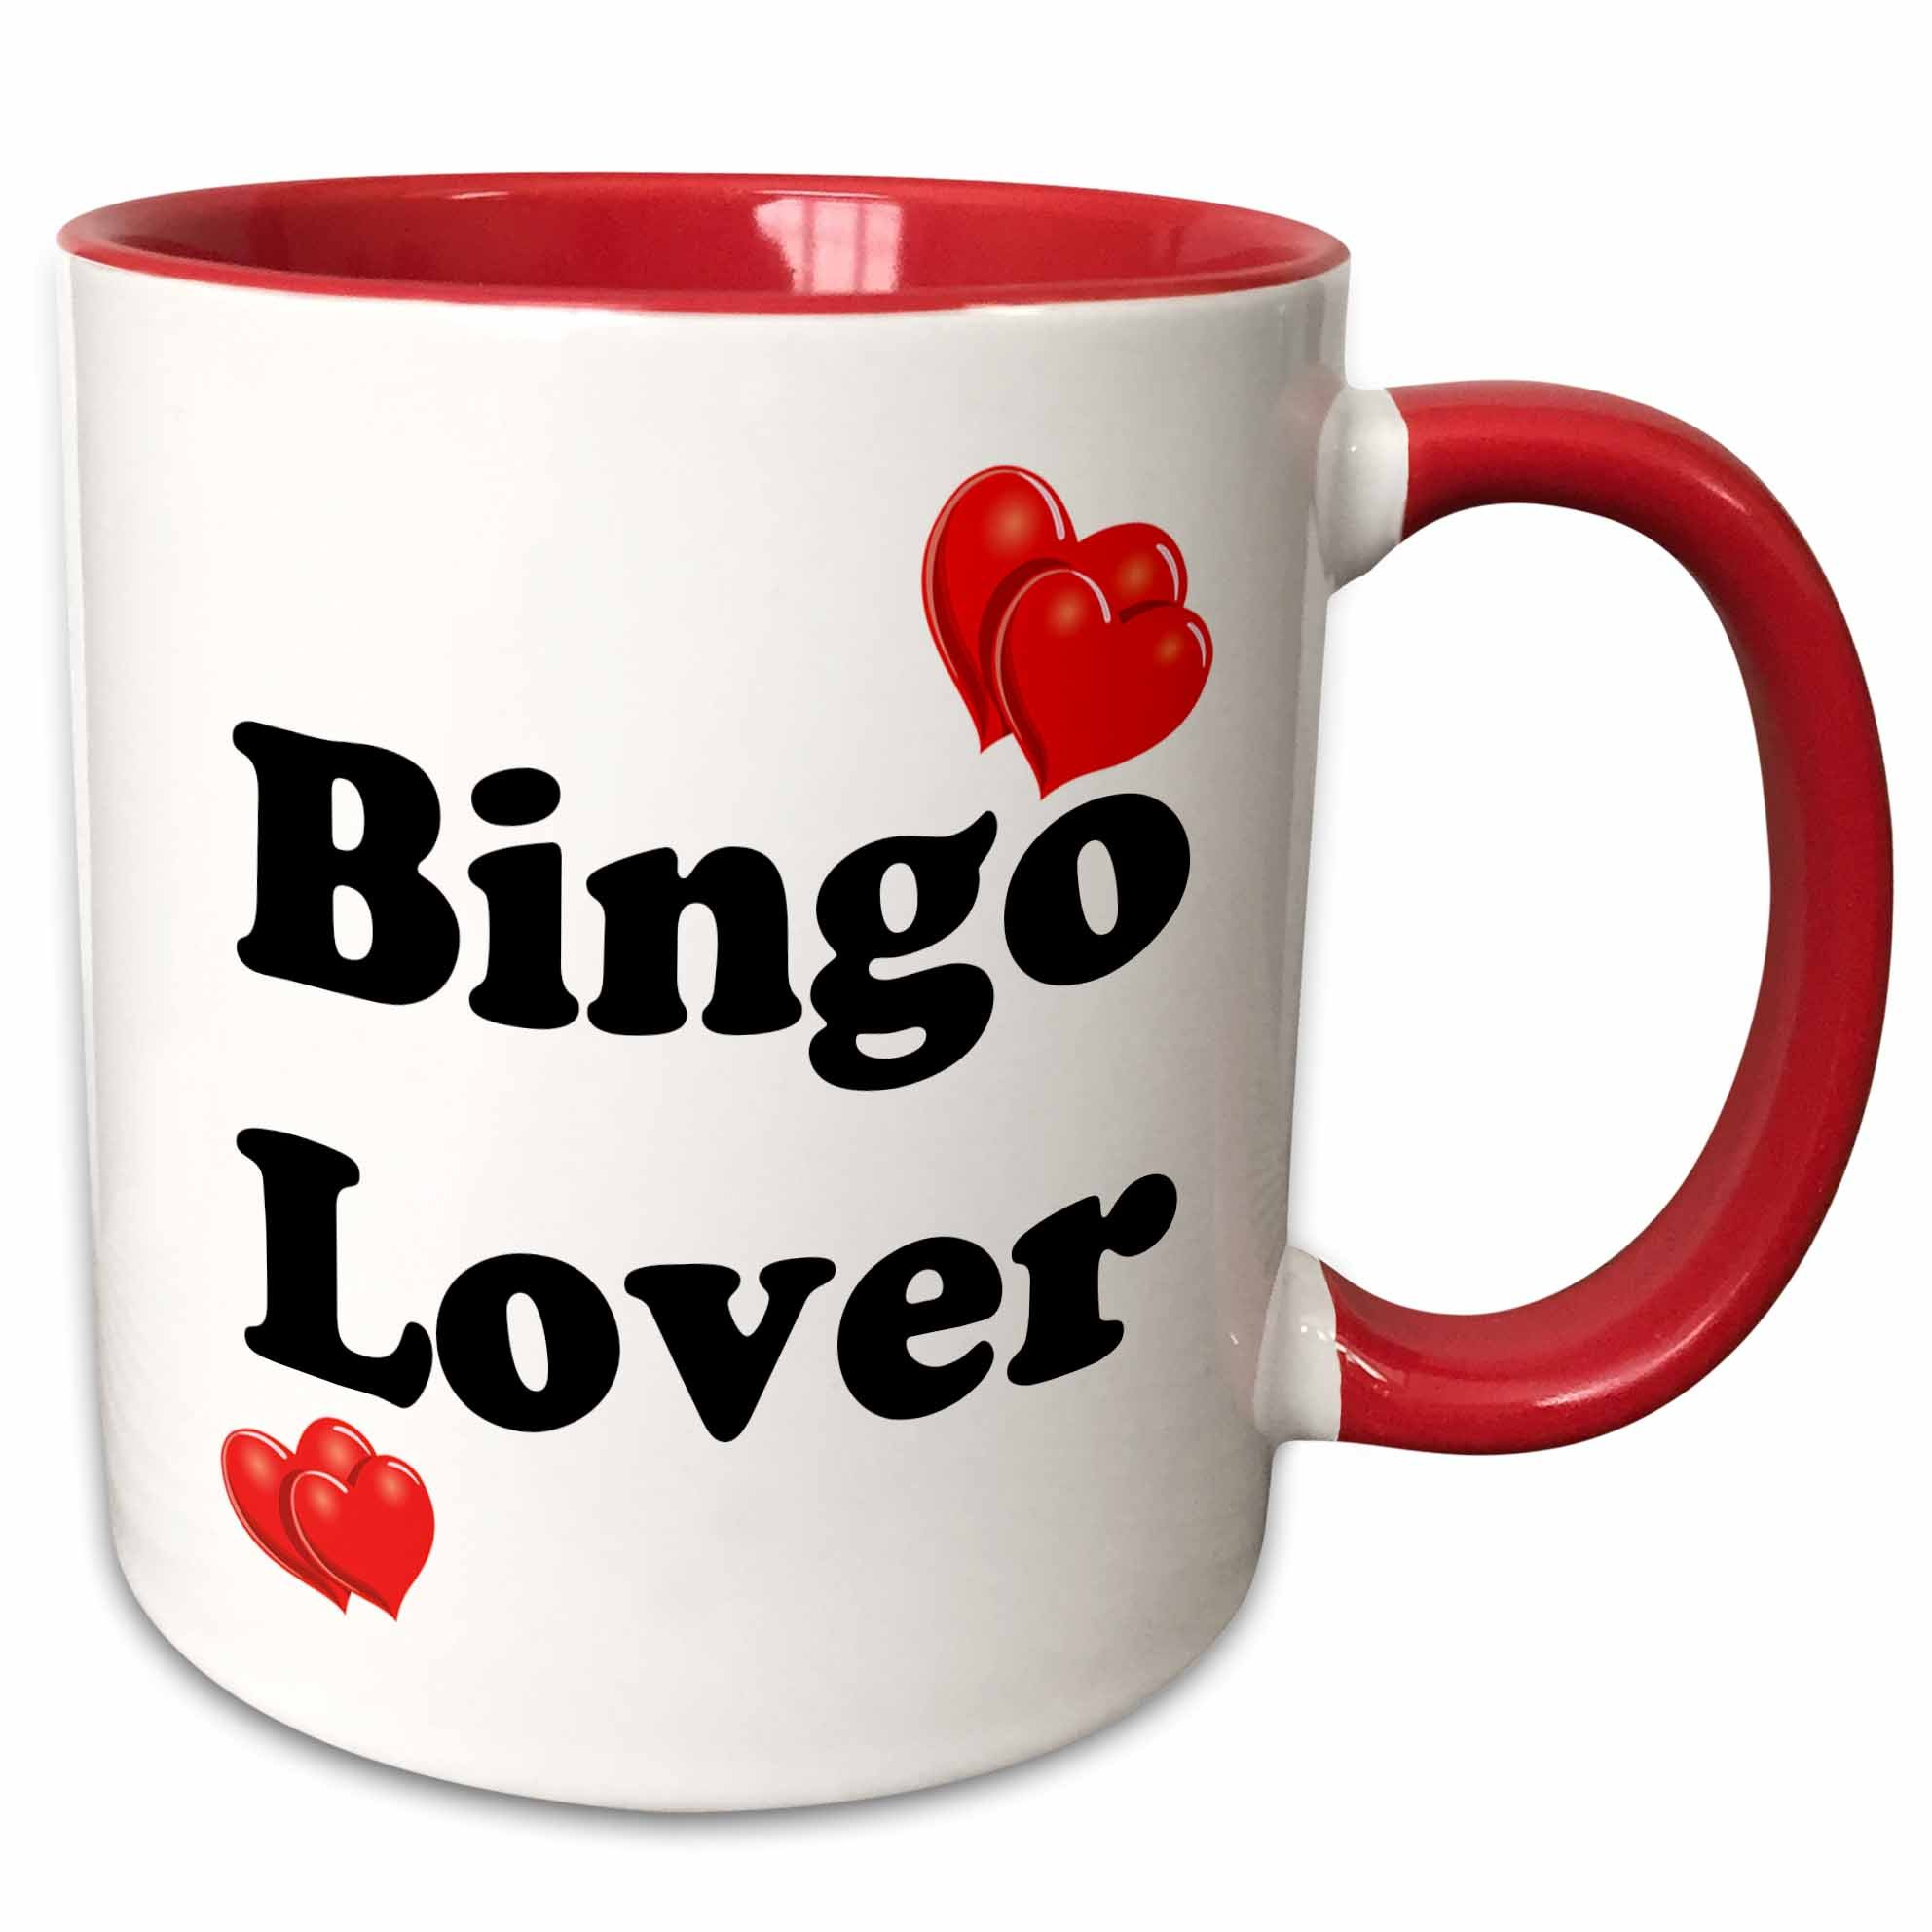 3dRose mug_108315_5 Bingo Lover Ceramic, 11 oz, Red/White by 3dRose